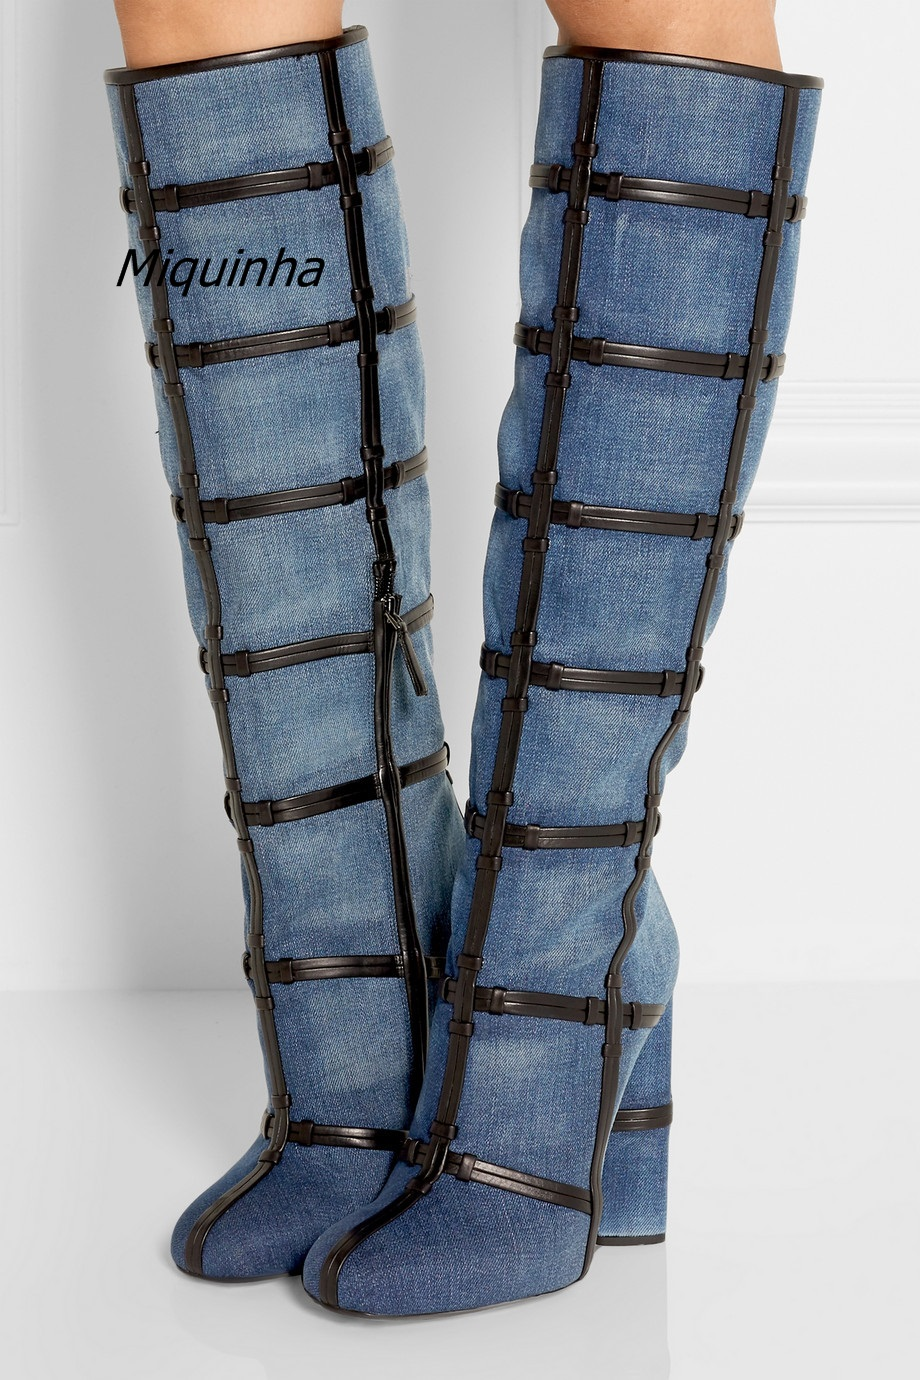 Trendy Design Blue Jeans Block Heel Keen High Boots Classy Denim PU Patchwork Round Toe Boots Fashion Chunky Heel Keen HighShoes men s cowboy jeans fashion blue jeans pant men plus sizes regular slim fit denim jean pants male high quality brand jeans